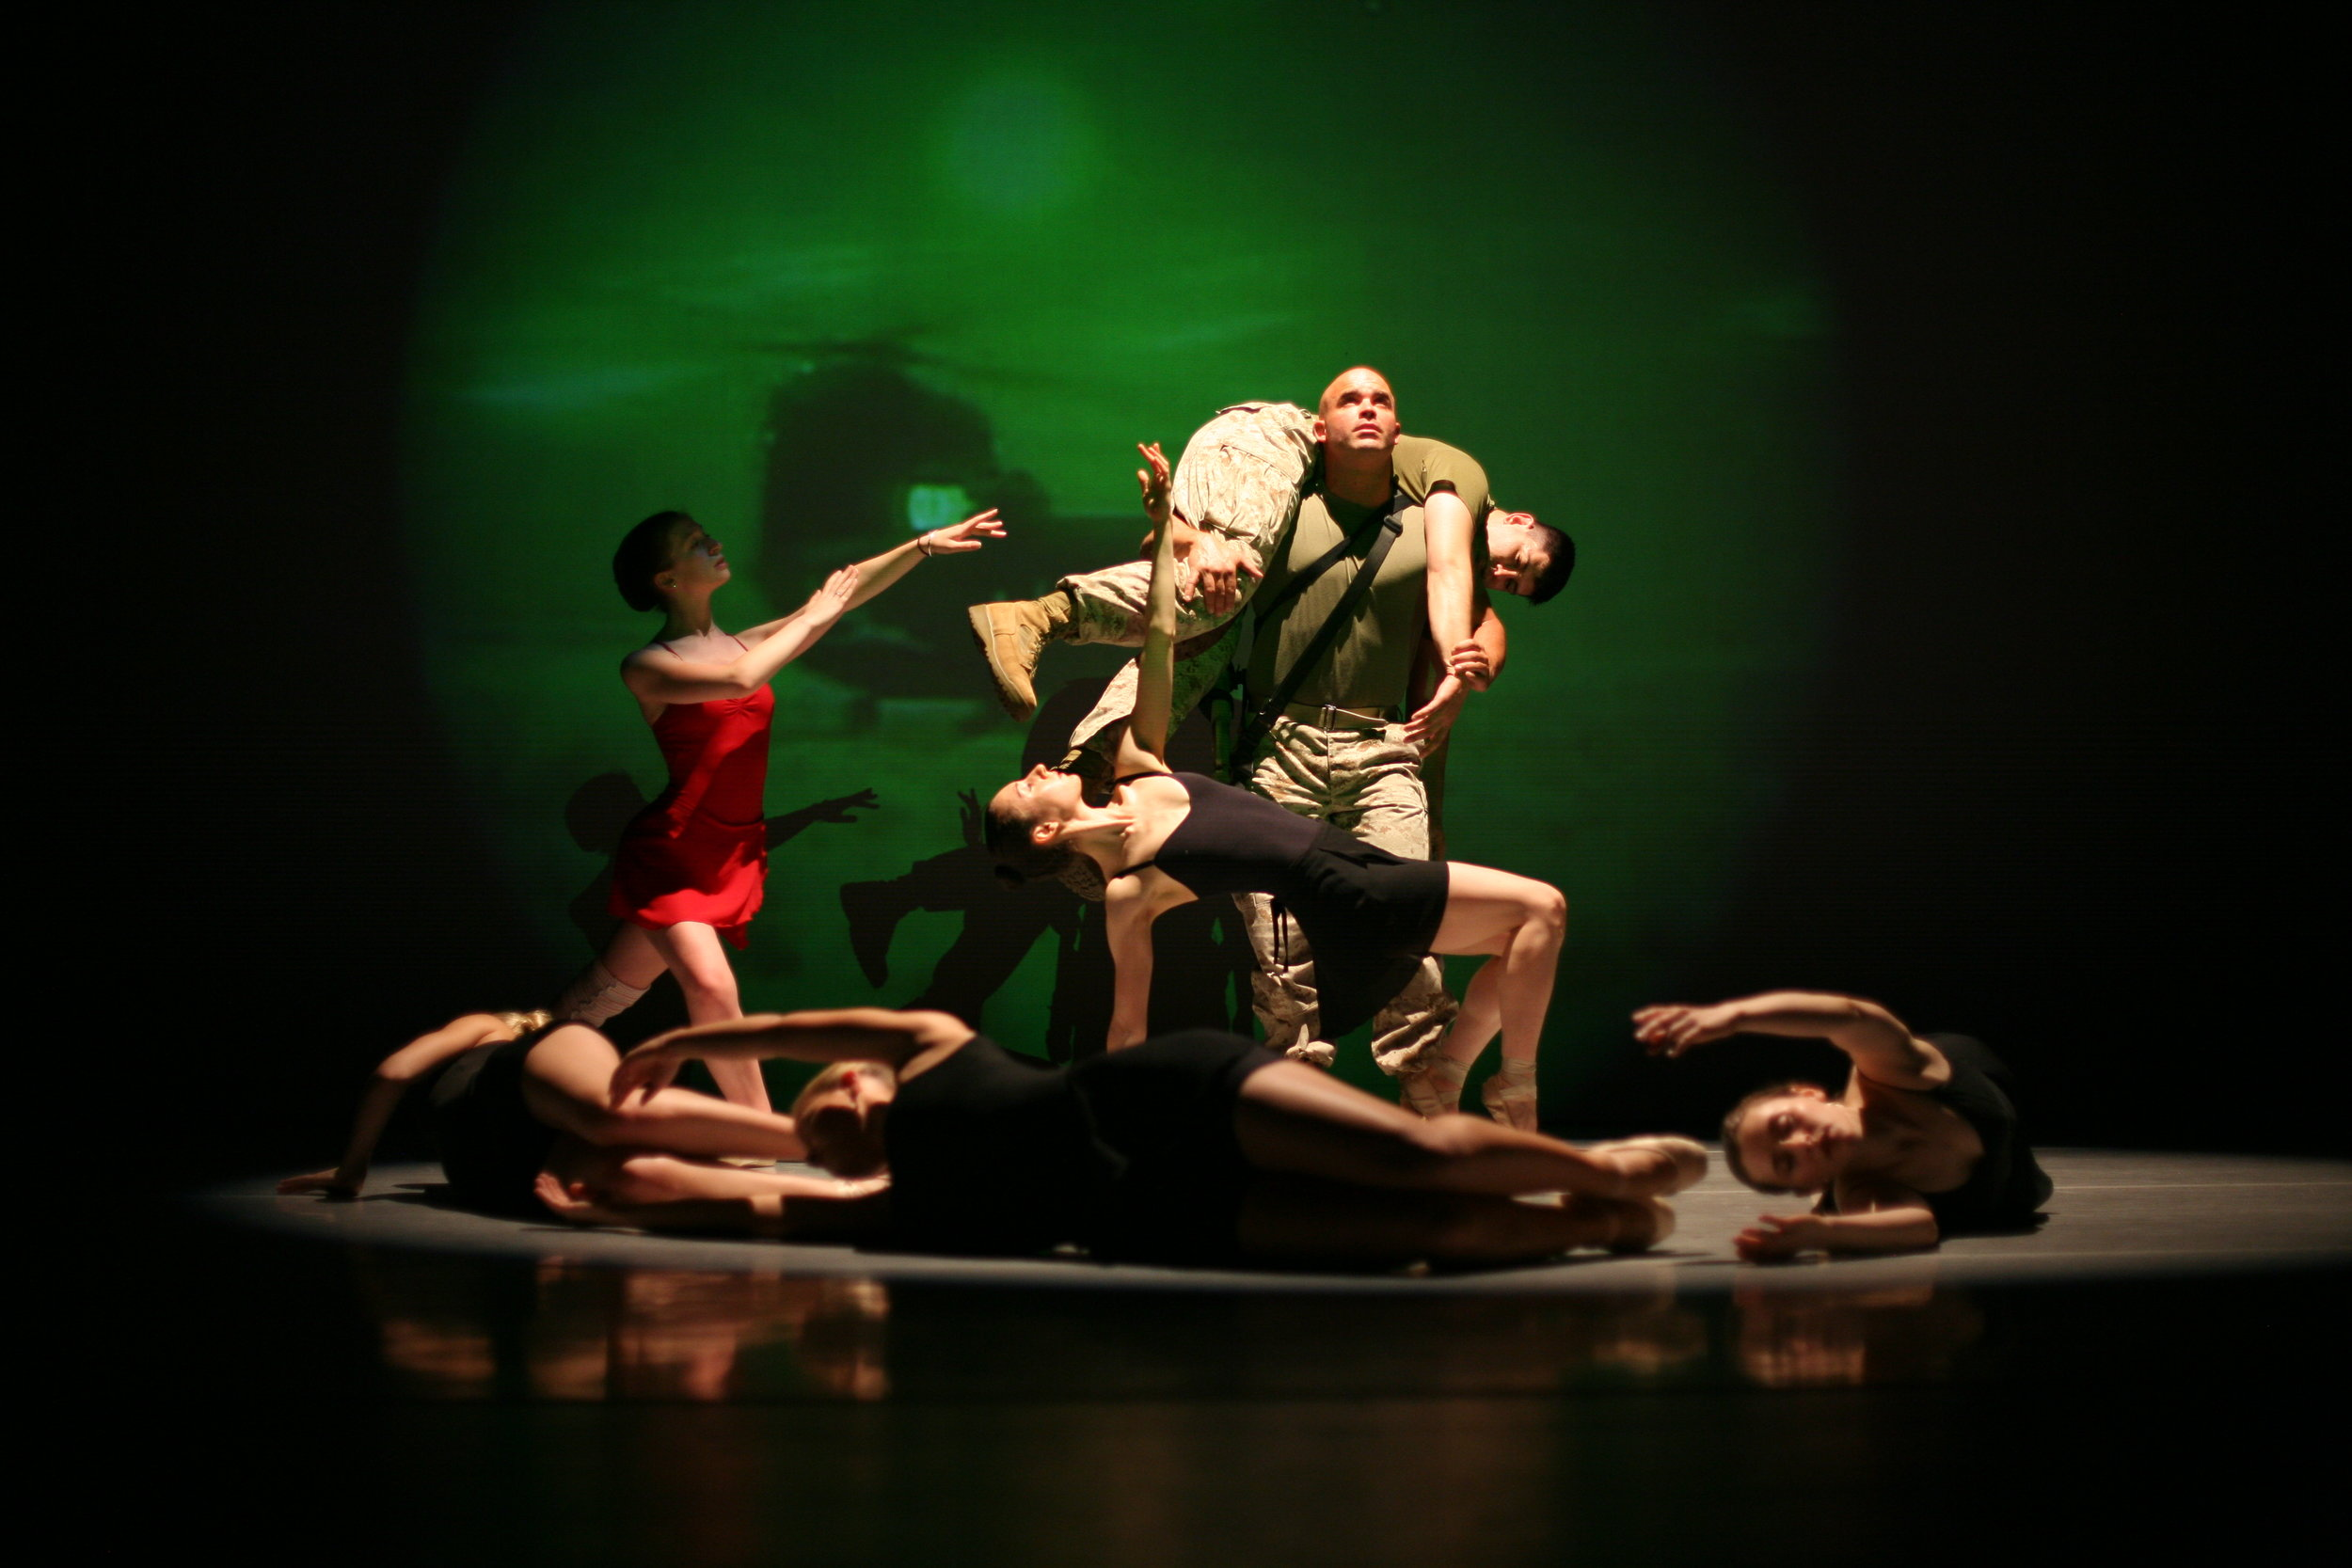 """Exit12 Dance Company   Name: Roman Baca Dance Theatre and Choreography  """"It has changed my life by allowing me to explore & investigate unresolved themes that were associated with my service."""""""